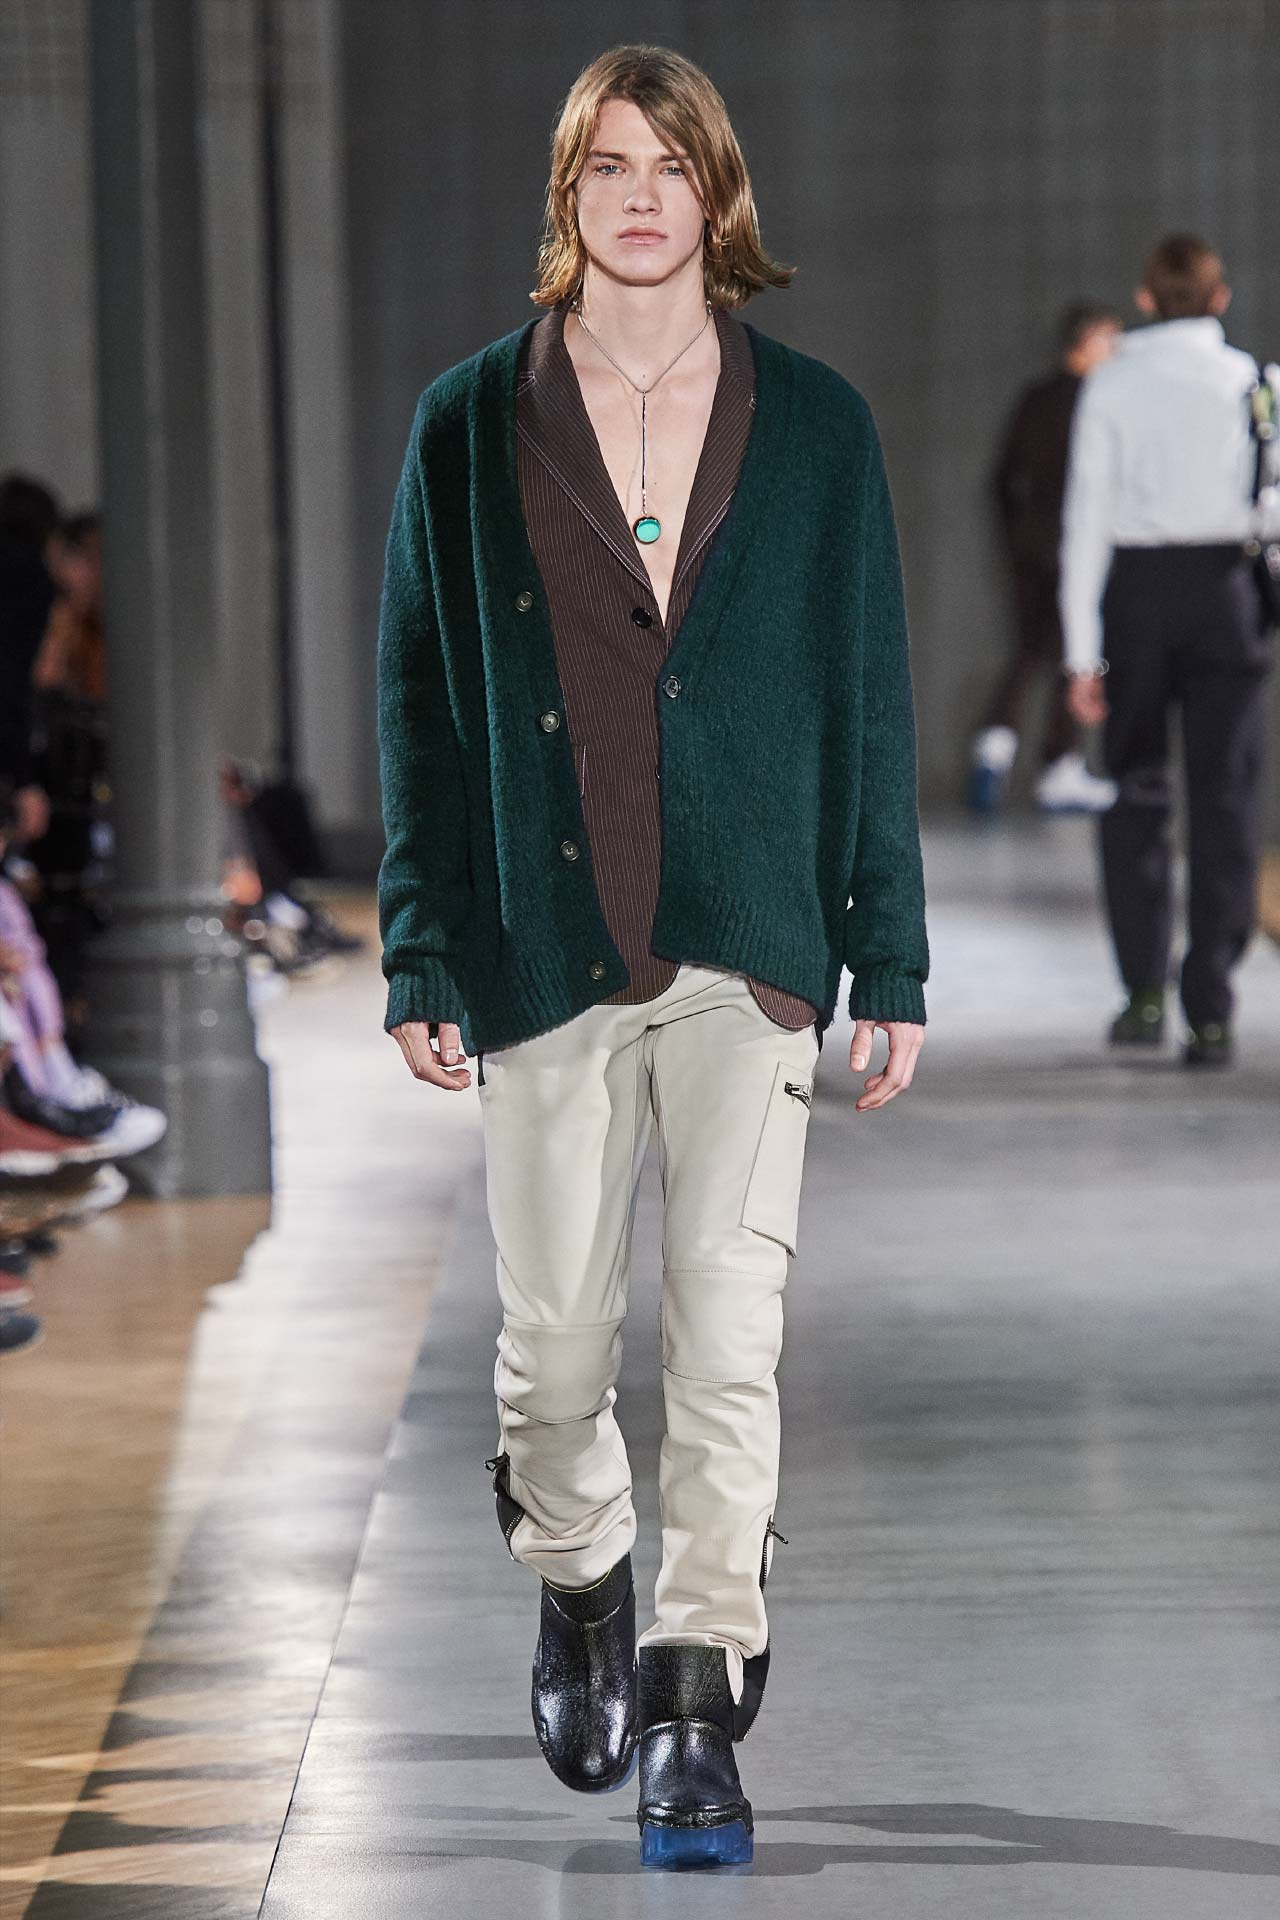 Look Fall/Winter 2019, image 20